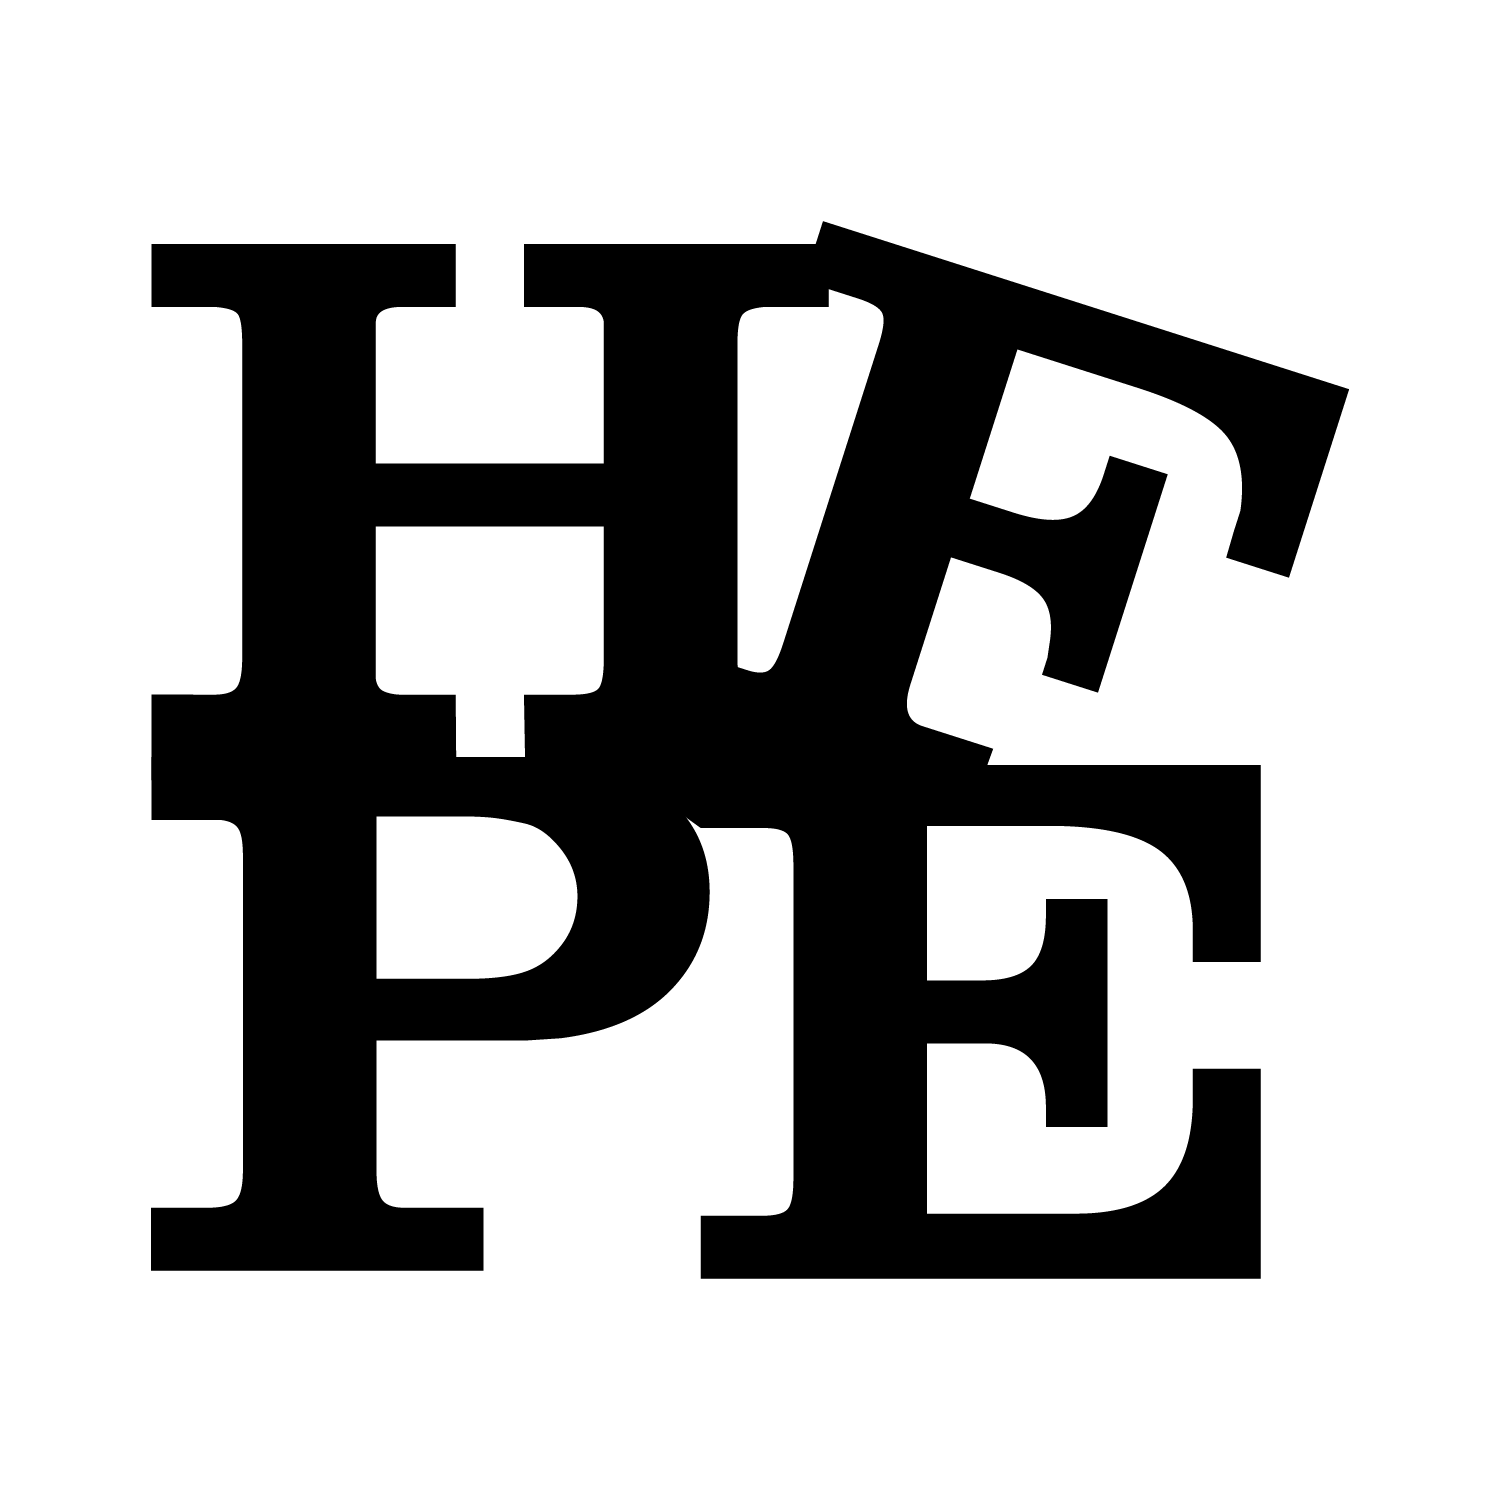 hfpe